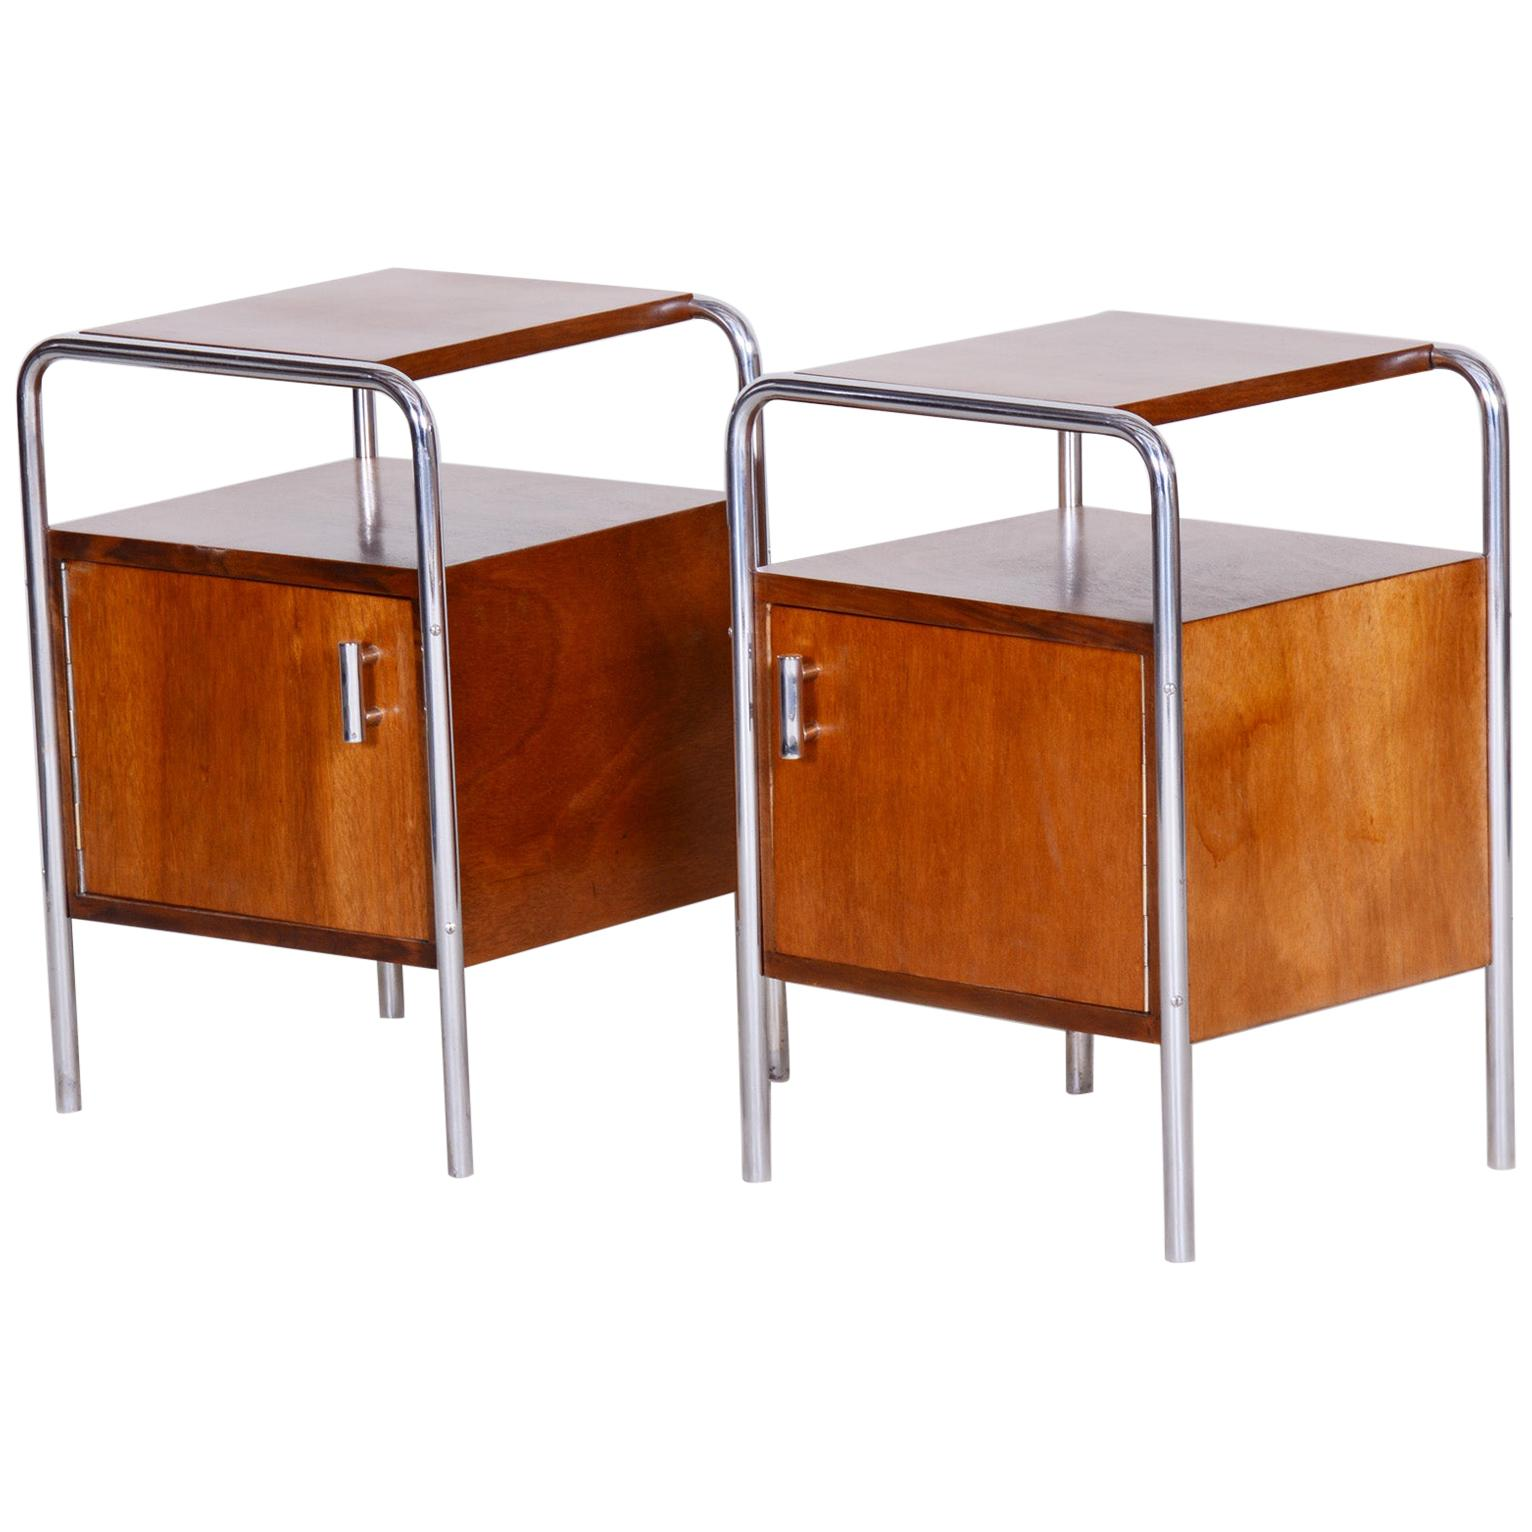 Pair of Macassar Bauhaus Bed-Side Tables by Robert Slezak, Czechoslovakia, 1930s